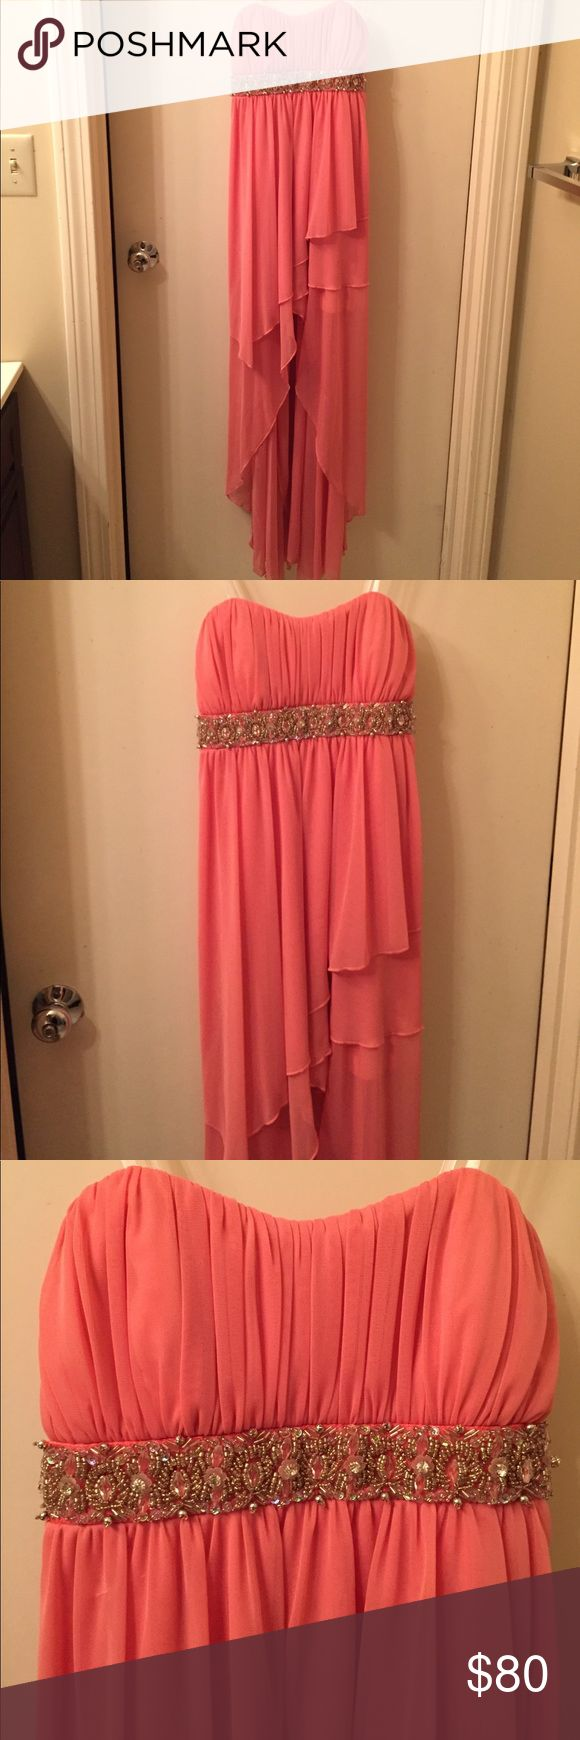 Nordstrom Prom Dress Long beautiful pink / salmon colored beaded strapless gown with layered front. Zipper on the side was professionally added for easier dressing. Small snag in the front, but hardly noticeable (photographed). Only worn once on prom night! Get your prom dress before everyone else so you don't have to stress during prom dress shopping season! MAKE AN OFFER Nordstrom Dresses Prom